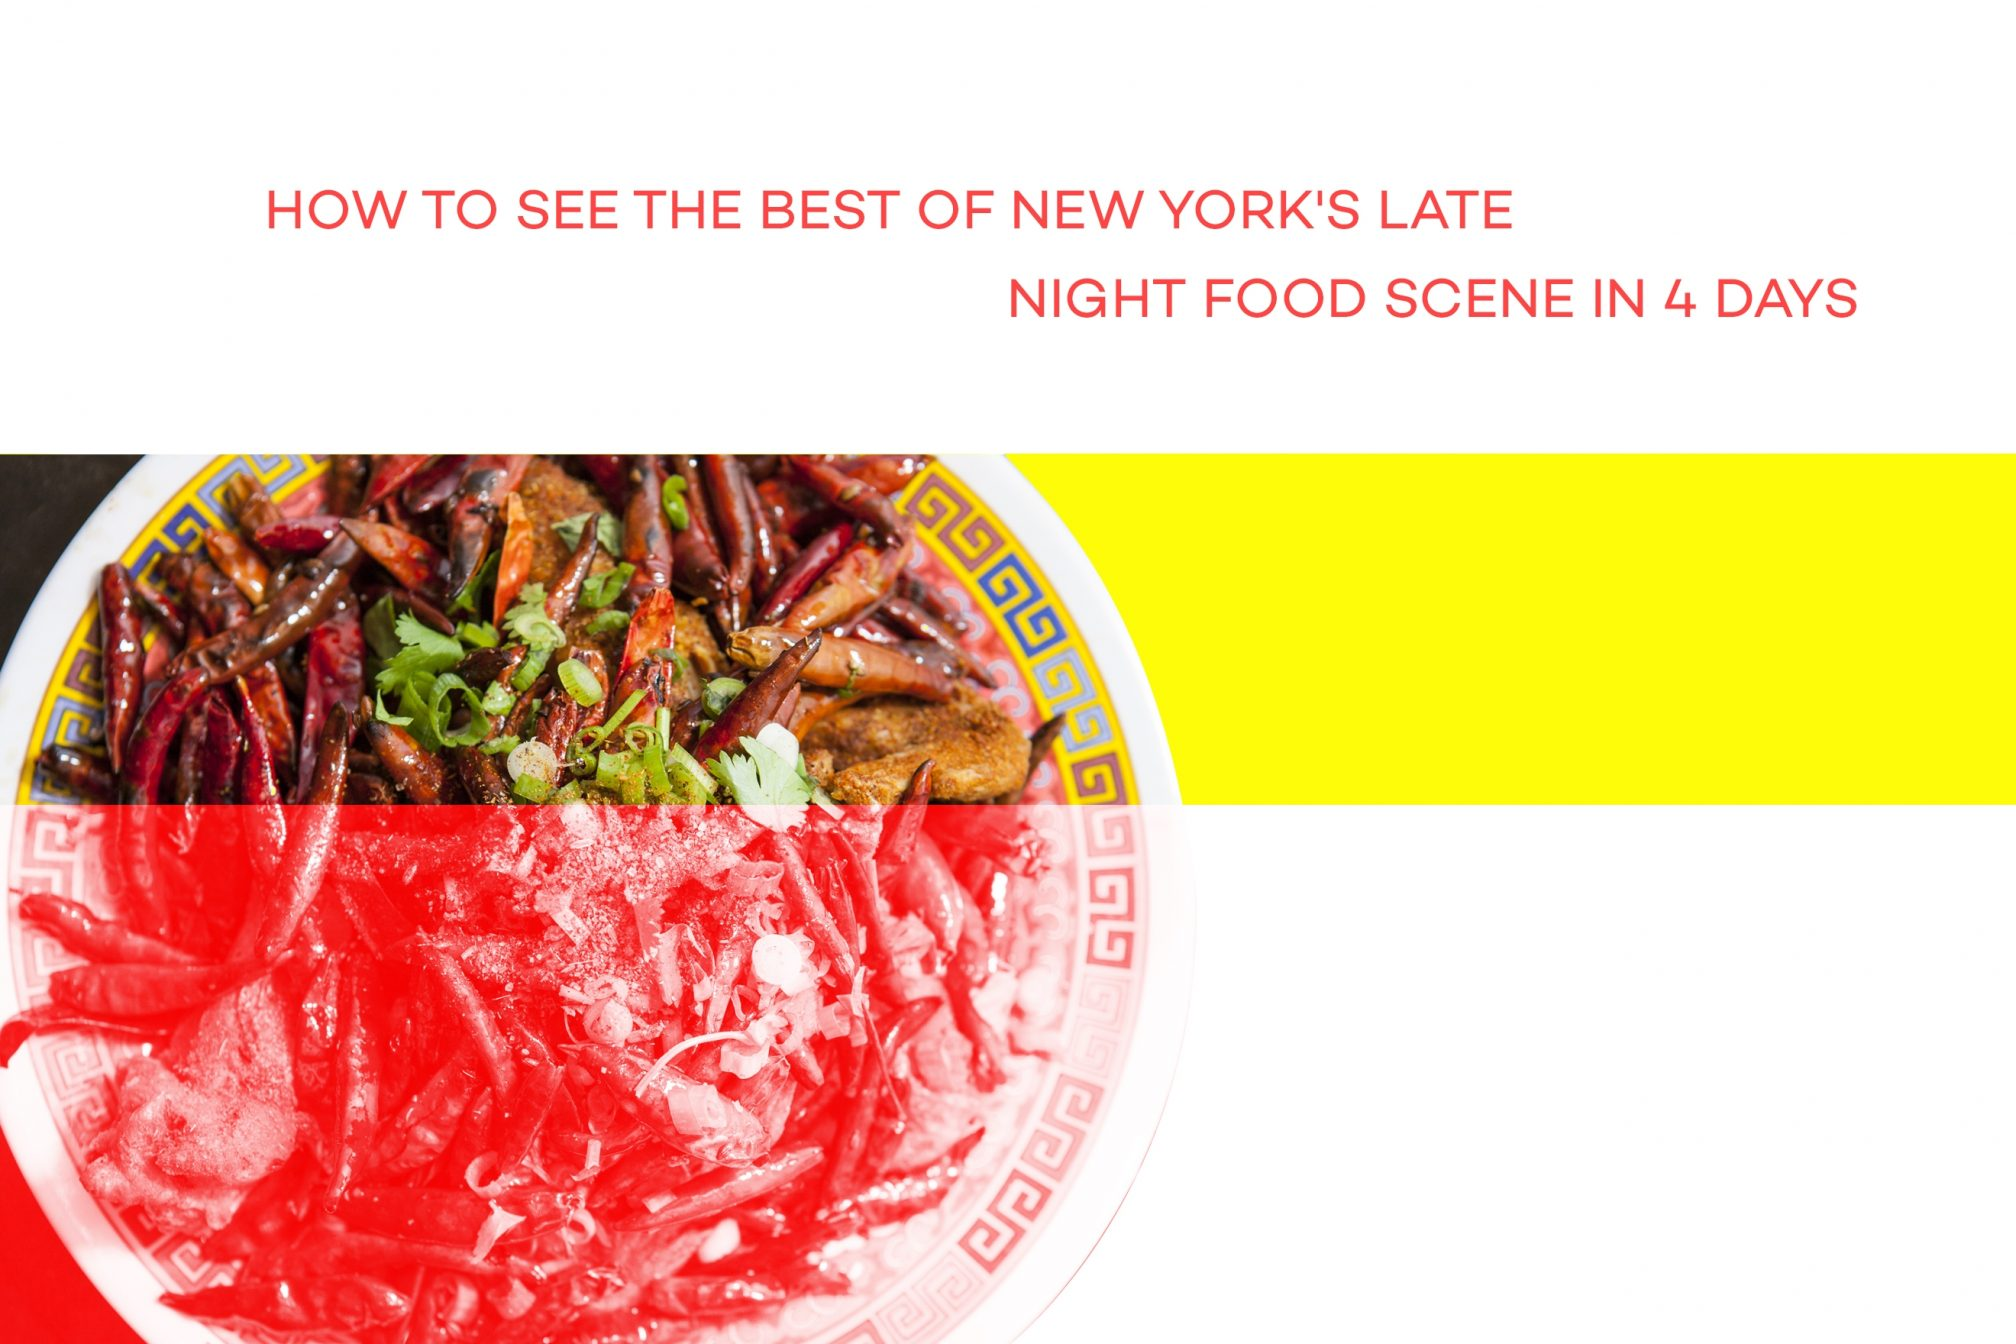 How to see the best of New York's late night food scene in 4